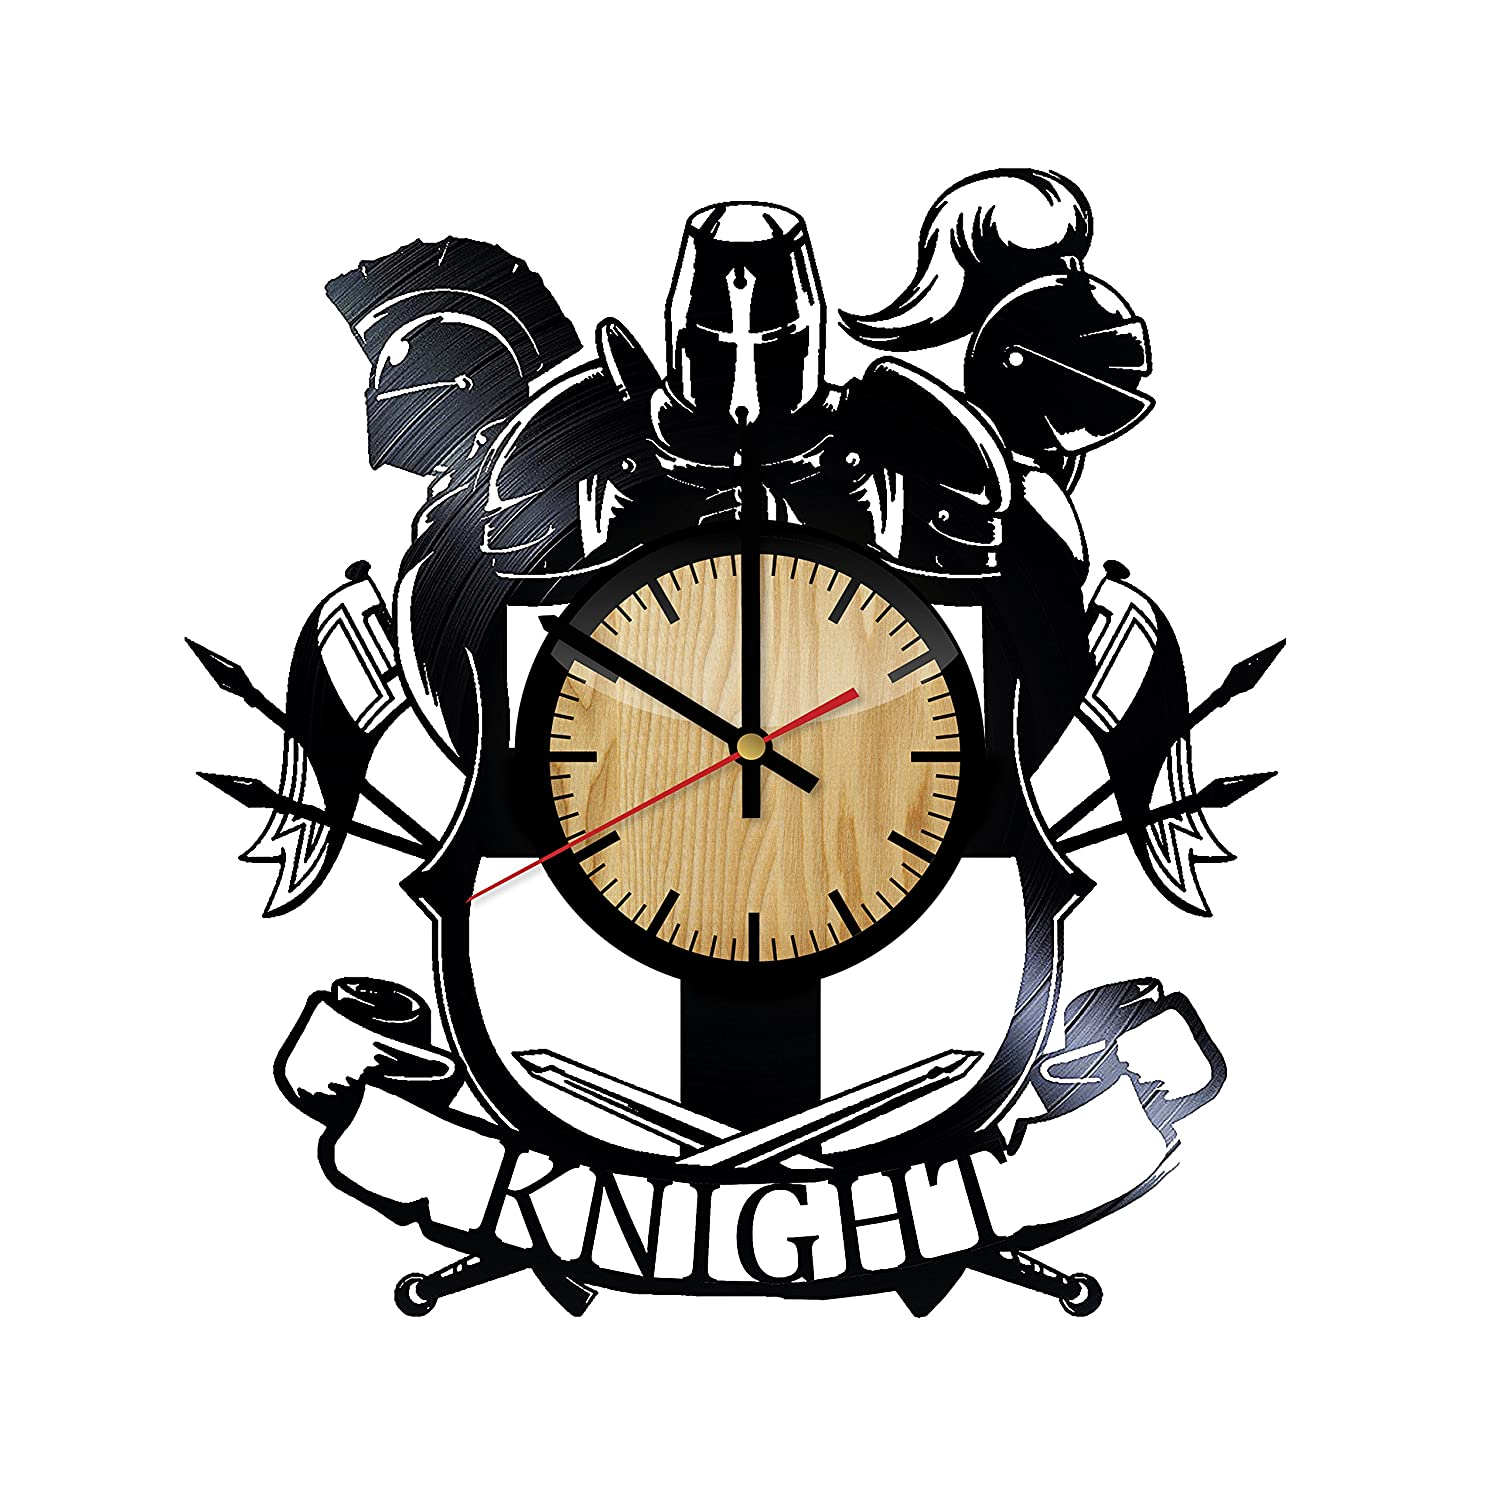 Knight Armor Vinyl Wall Clock Unique Birthday Handmade Gift for any Occasion Wall D/écor Ideas for any Space Anniversary Wedding